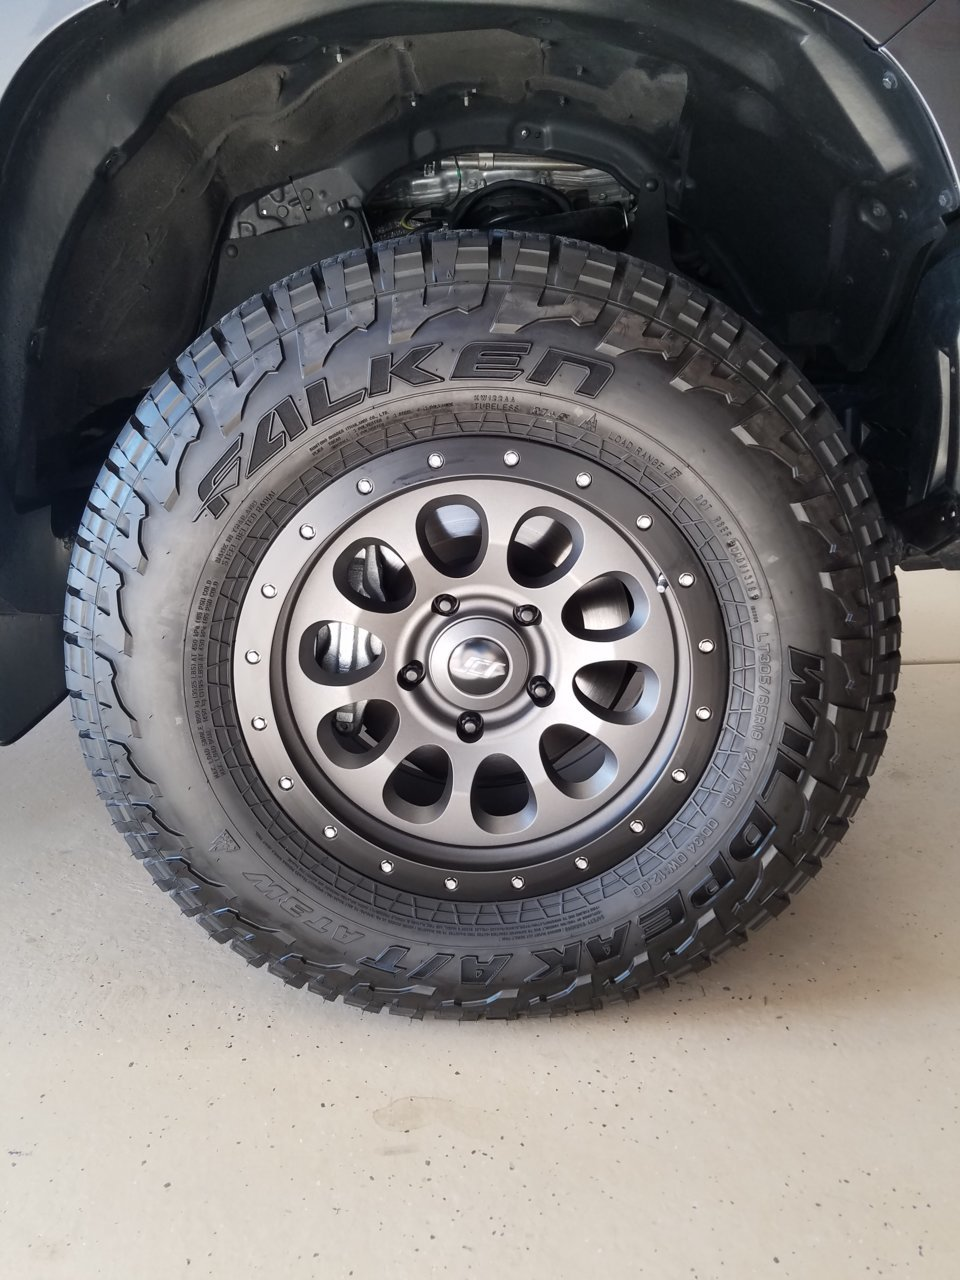 Wax and tire cleaner suggestions? | Toyota Tundra Forum